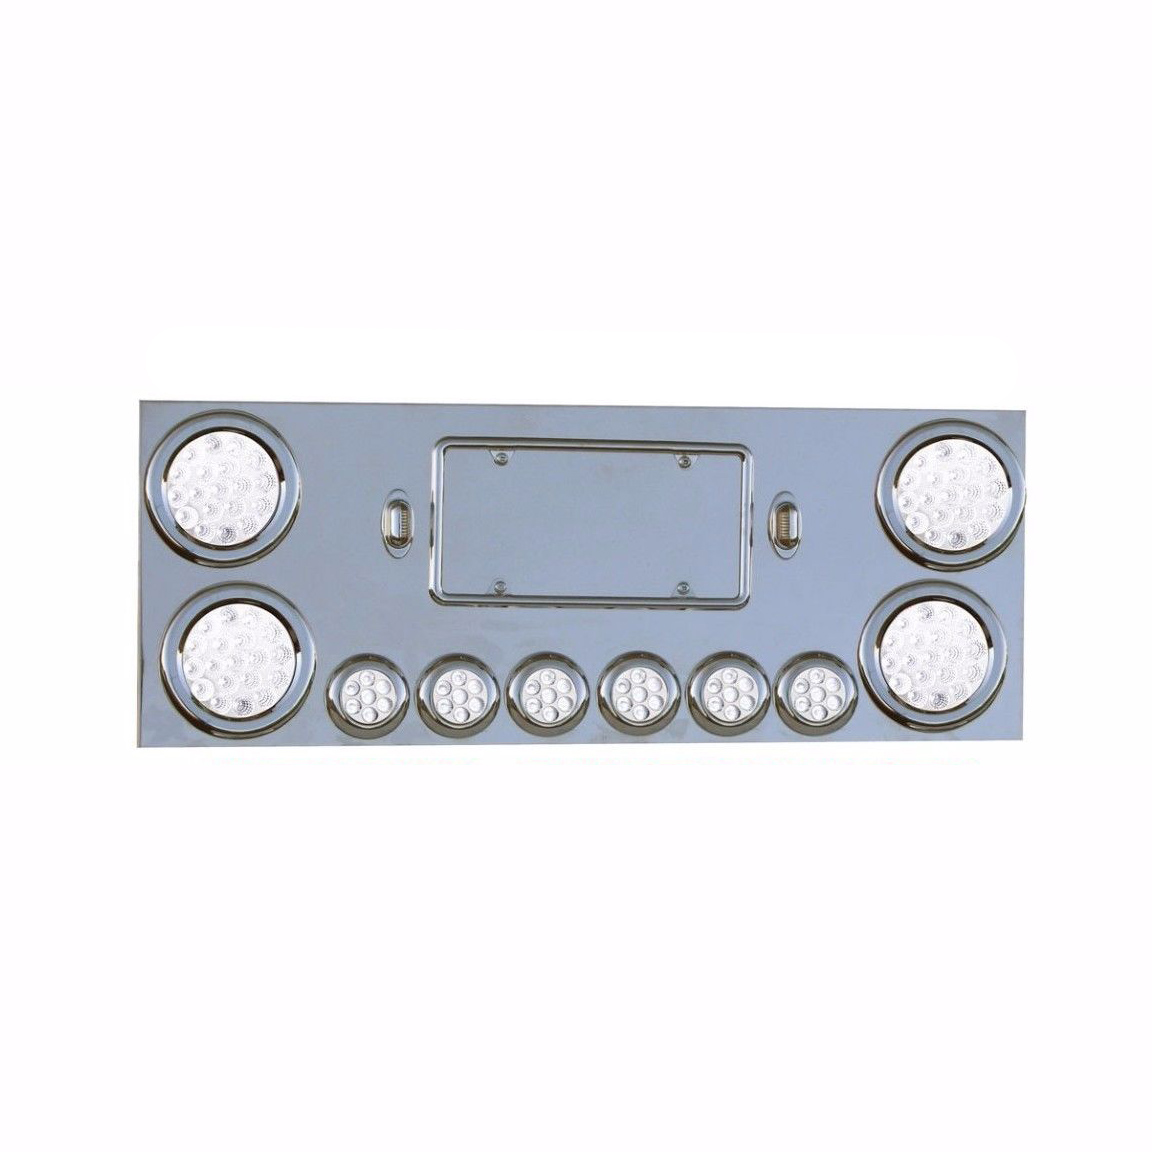 Rear Center Panel Stainless Steel w/ Dual Function (40 LED Lights) Chrome Plated